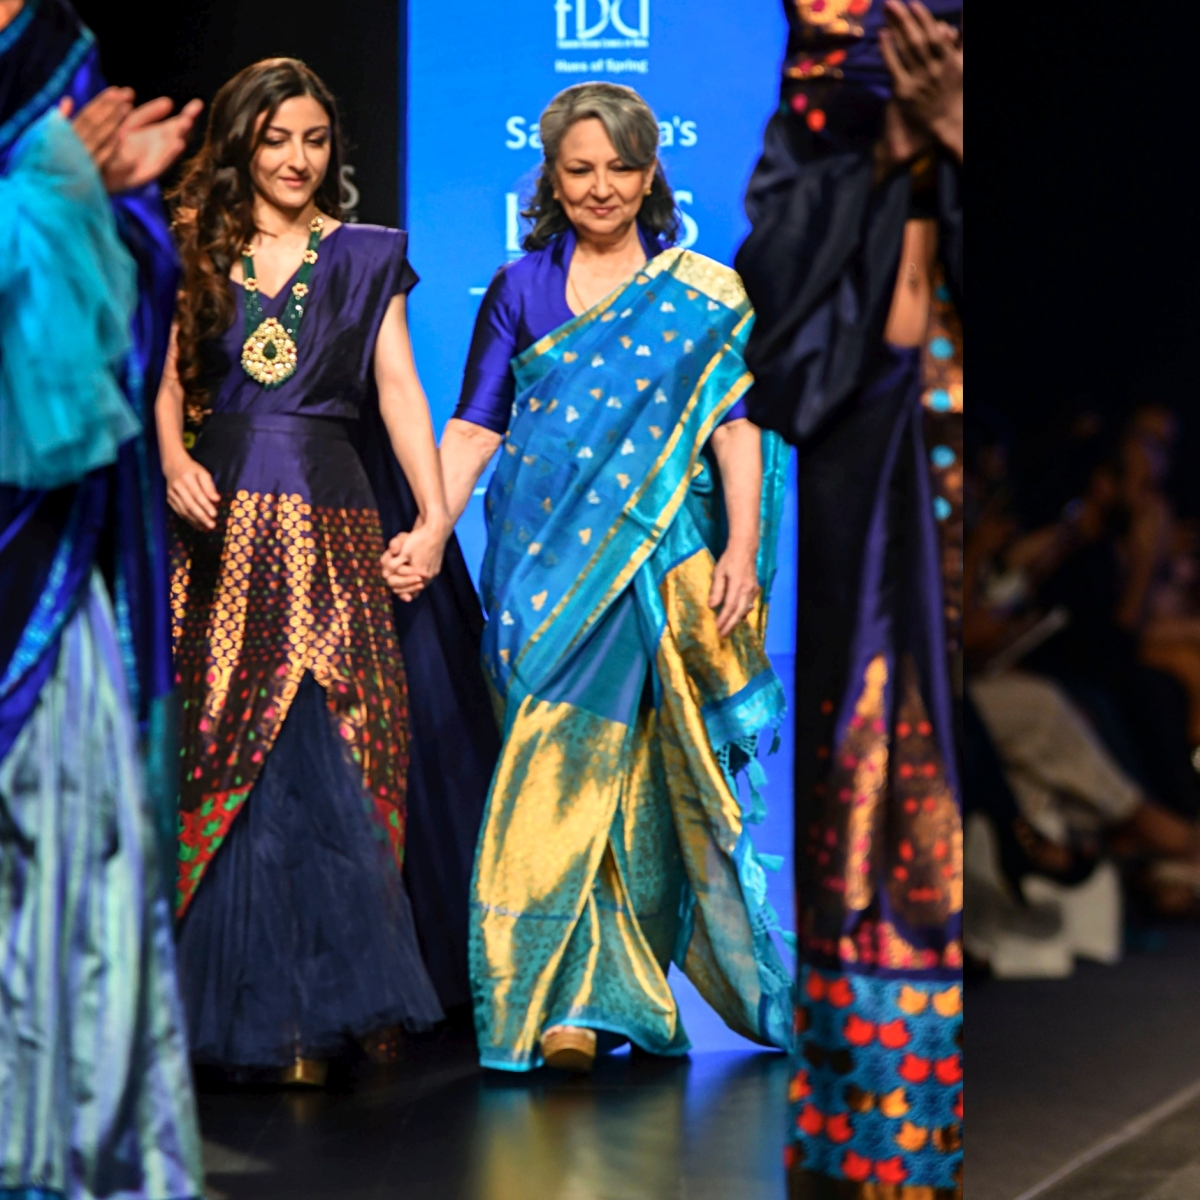 Beauty through ages: Sharmila Tagore and Soha Ali Khan turn showstoppers for Sanjukta Dutta at IFW 2020